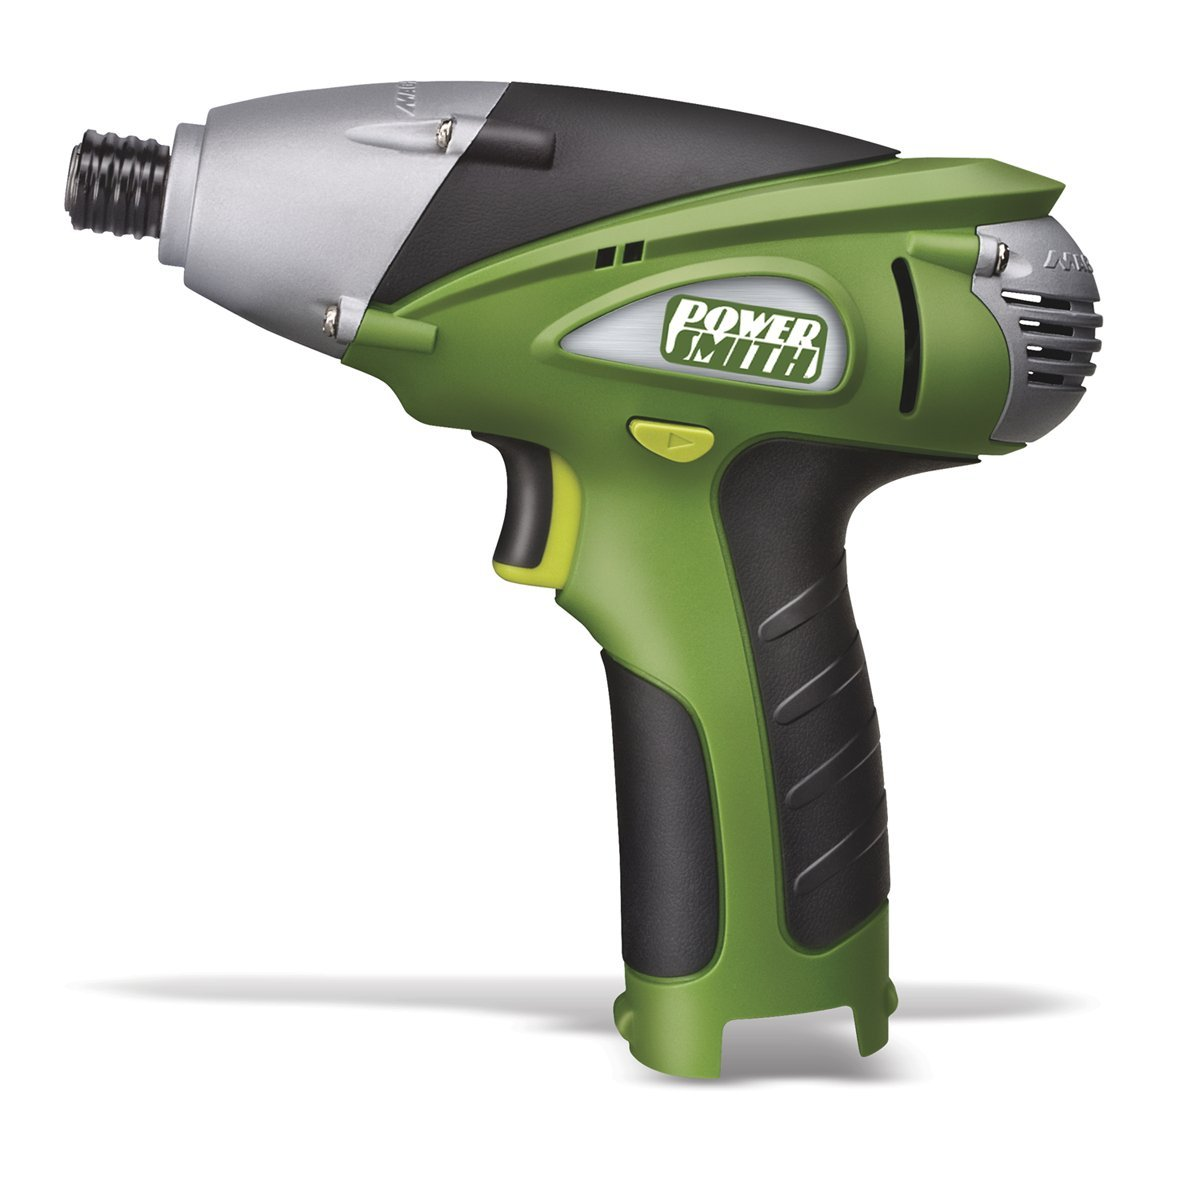 PowerSmith MLID12C Mag Lithium 12-volt Lithium Ion Compact Impact Driver with LED Light